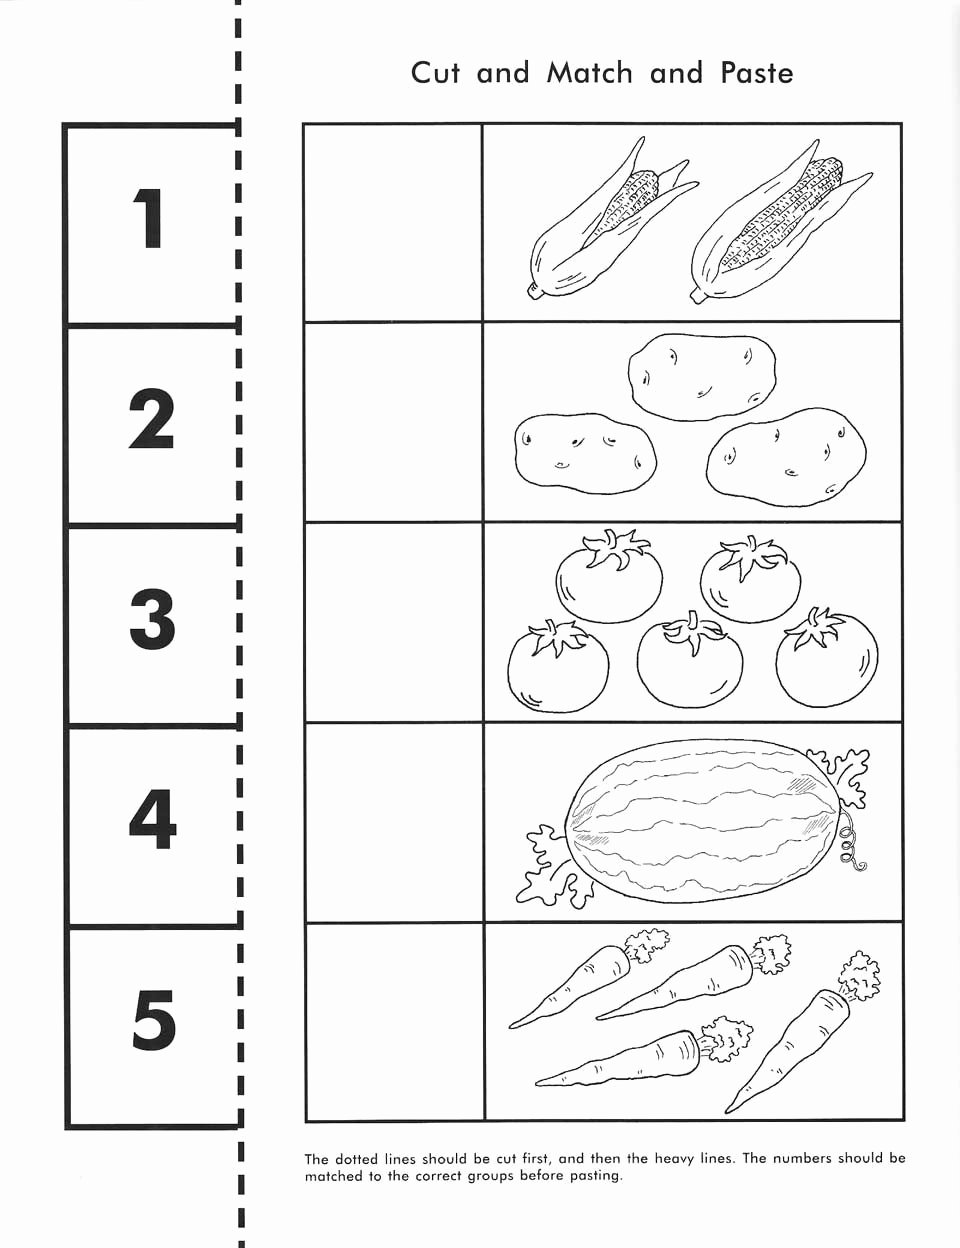 Kindergarten Worksheets Cut and Paste Free Rod & Staff Preschool Workbooks